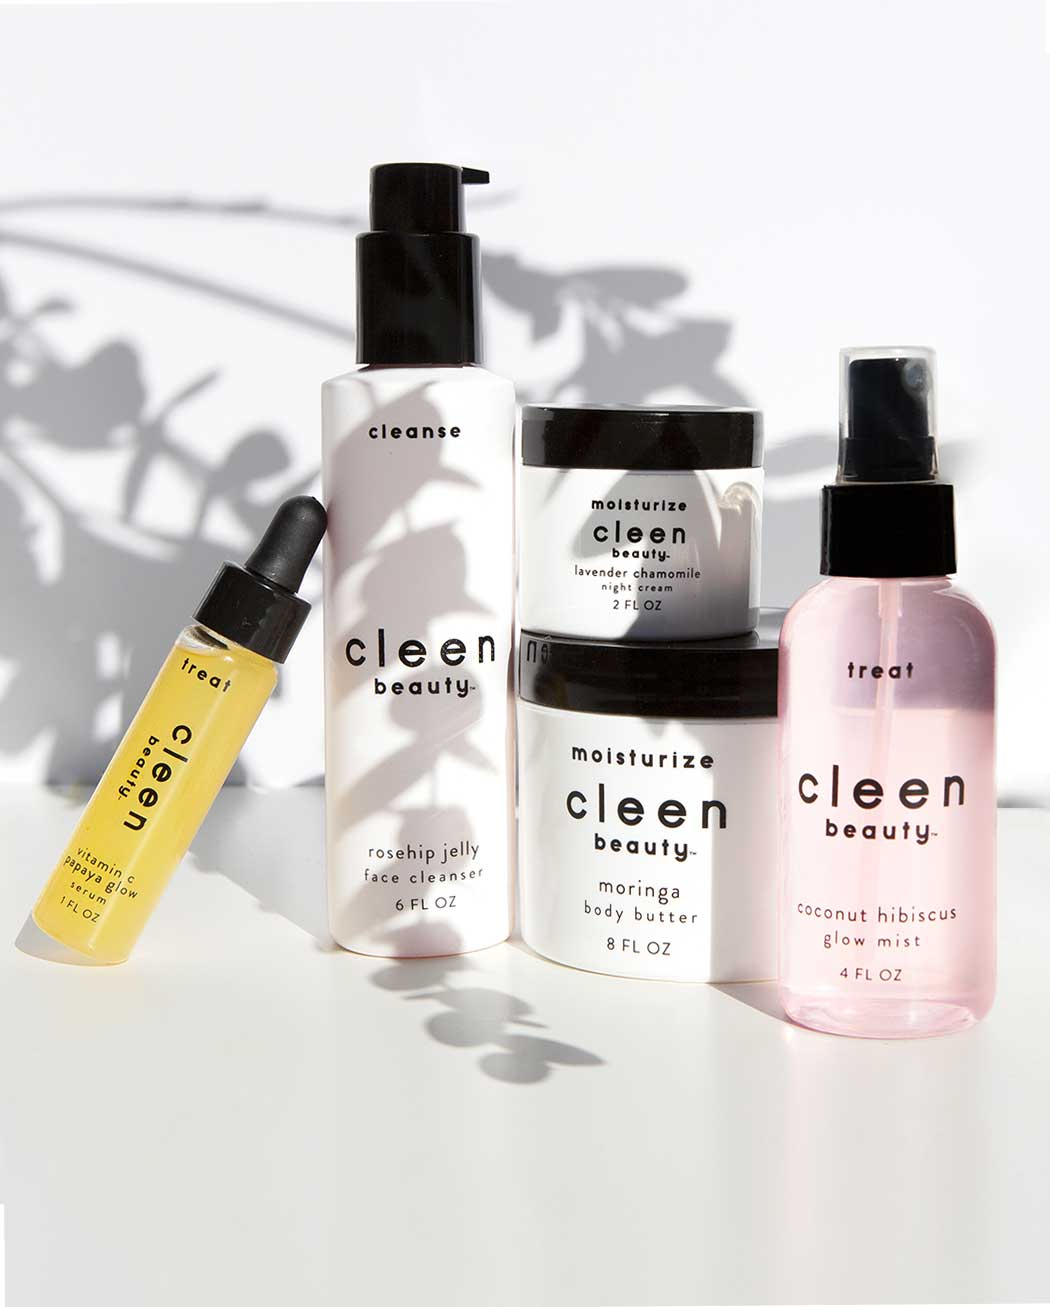 Image for meet cleen beauty™ collection